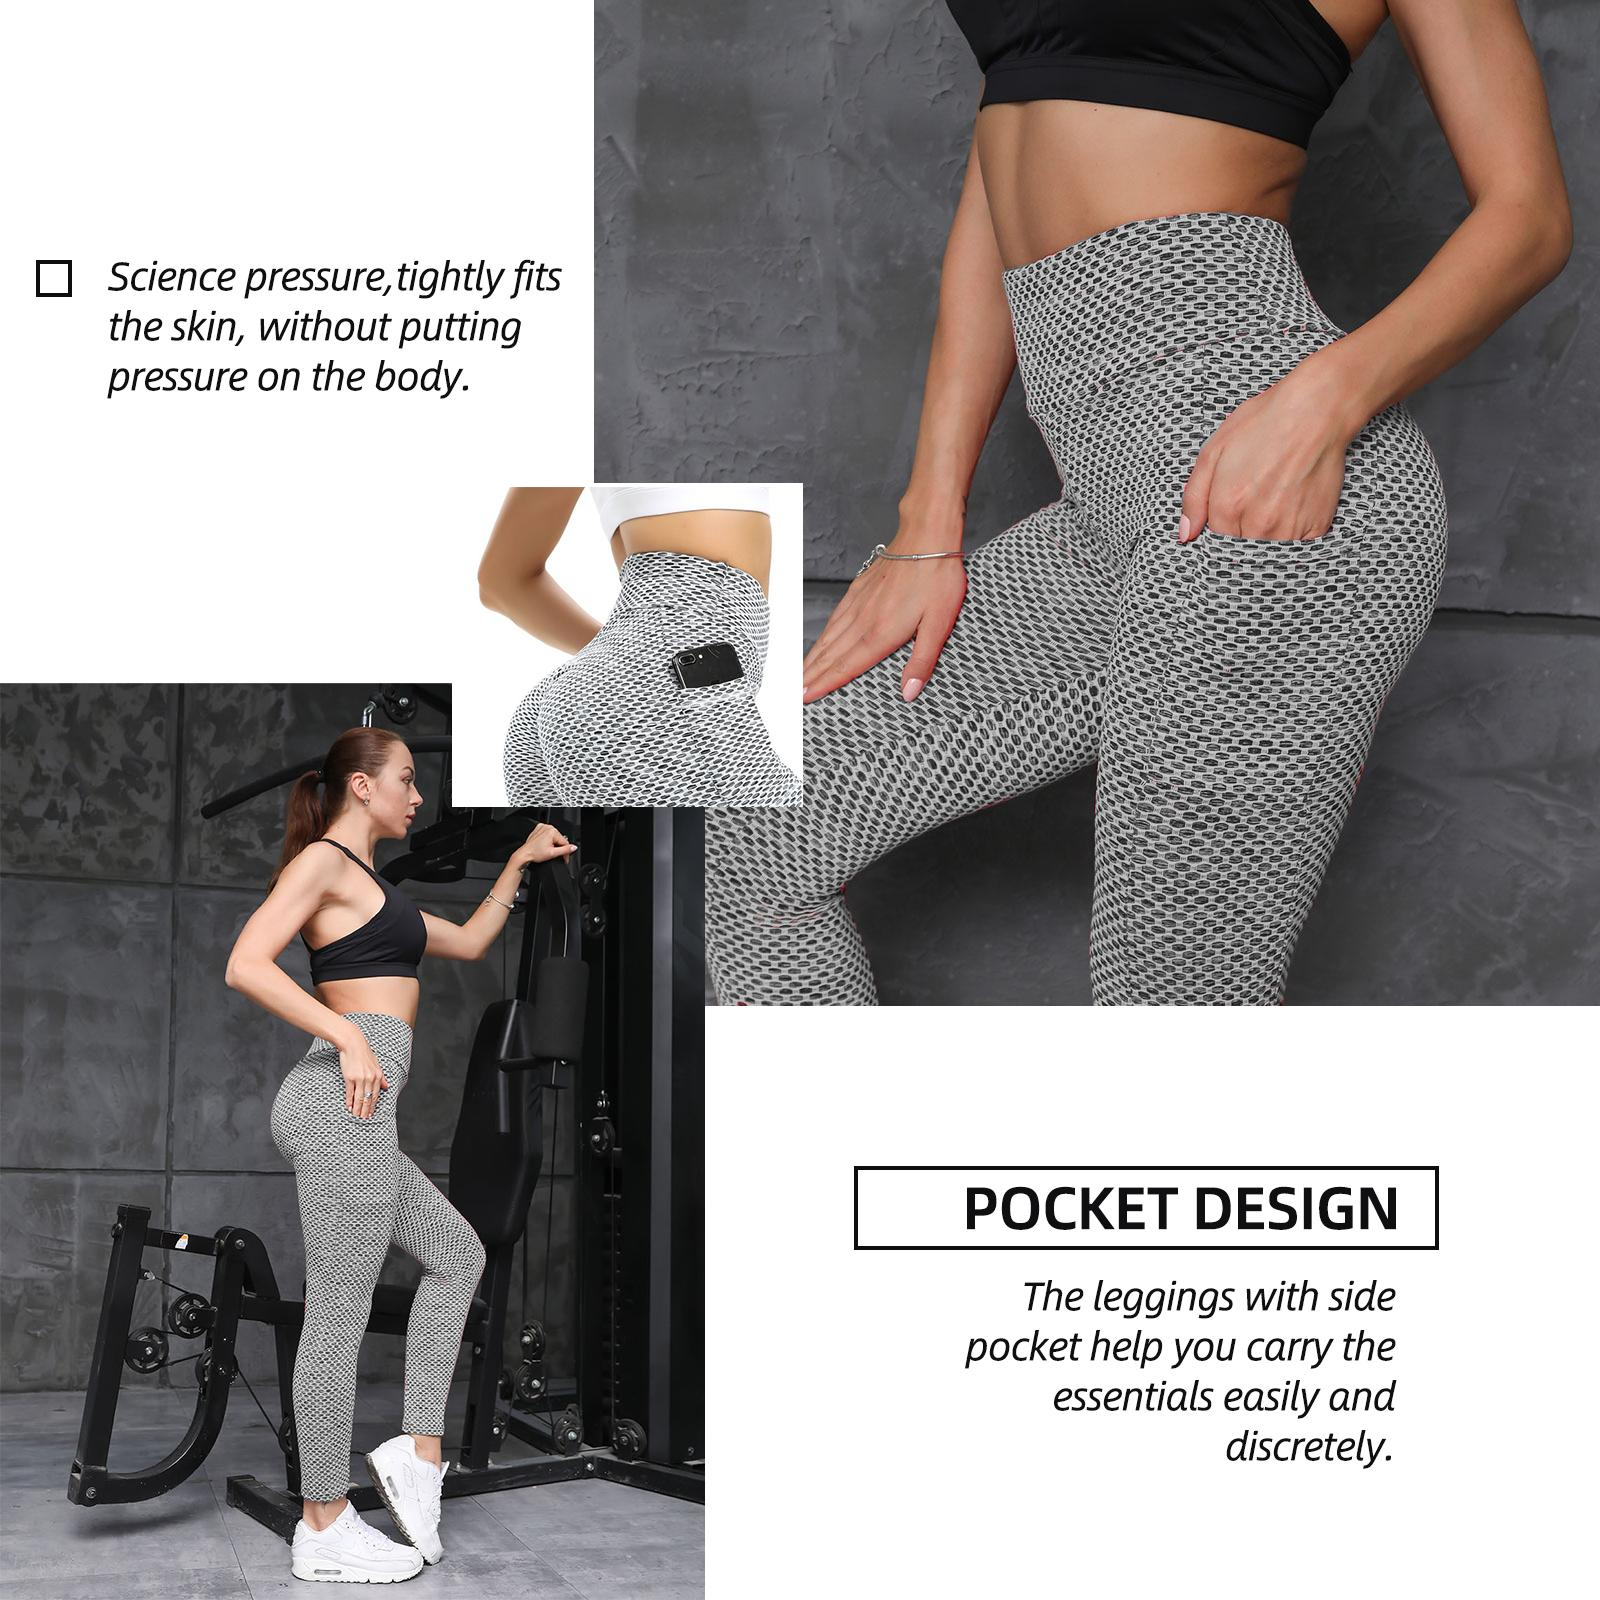 LU Yoga Outfits wholesale Exercise Fitness Wear TikTok Ladies Tights Lift Hips High Waisted Pants Pocket Grey Color Athletic Apparel Lady skinny Overall Size S-XXXL